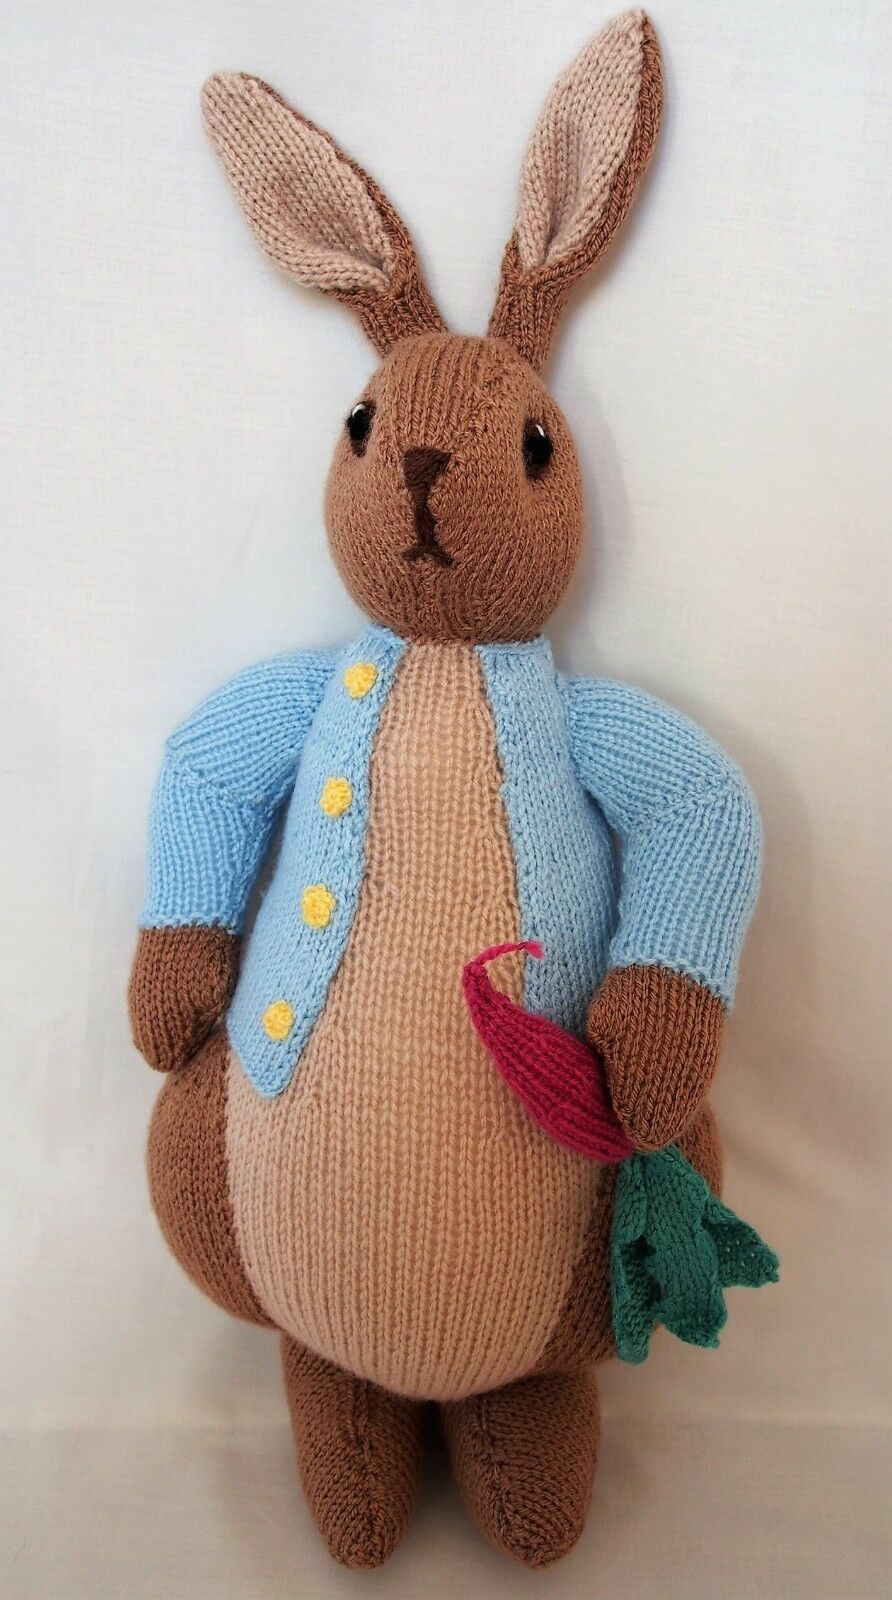 Peter rabbit hand knitted beatrix potter soft stuffed toy